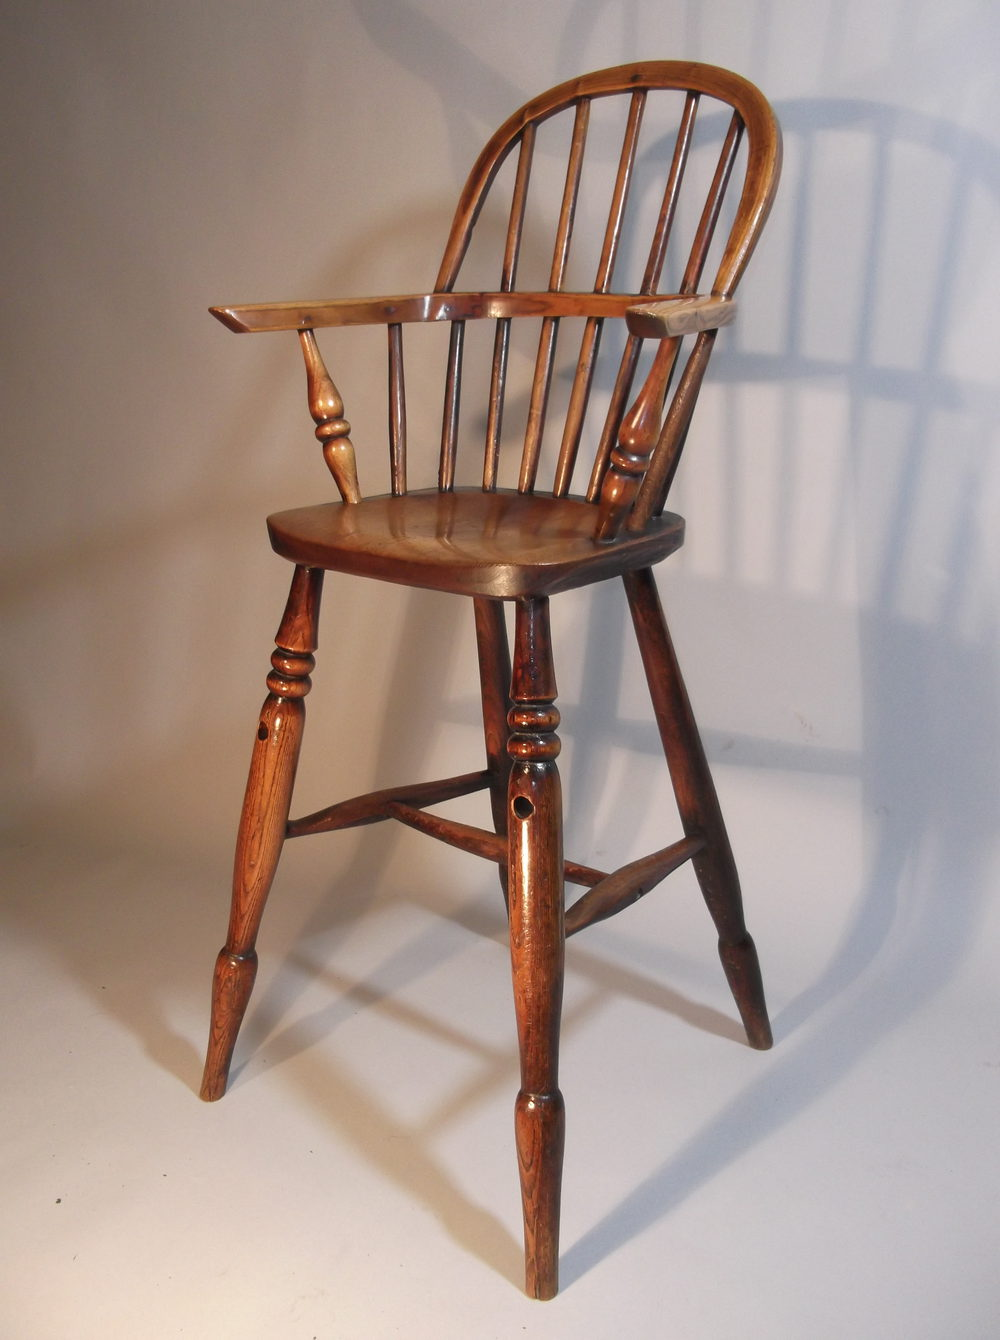 Childs 19th c windsor high chair Lincolnshire Antique ... - Child's 19th C Windsor High Chair Lincolnshire - Antiques Atlas